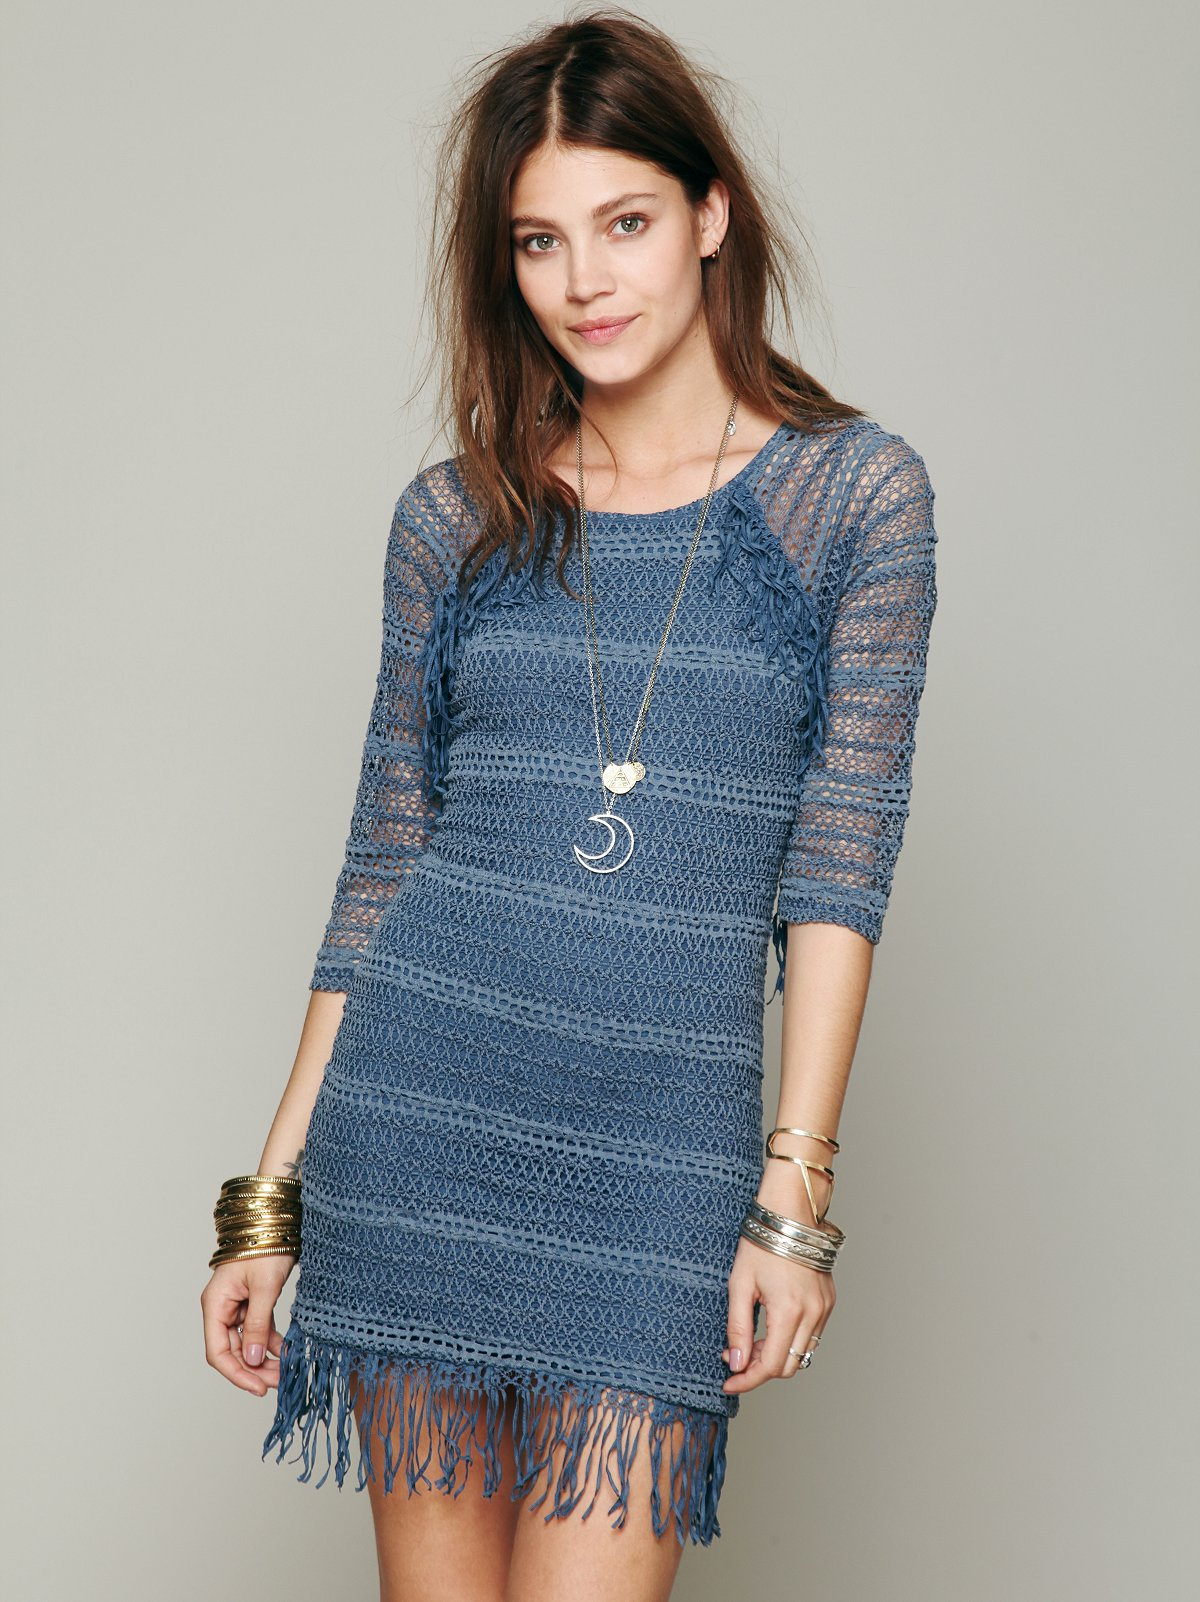 Fringed Crochet Raglan Dress